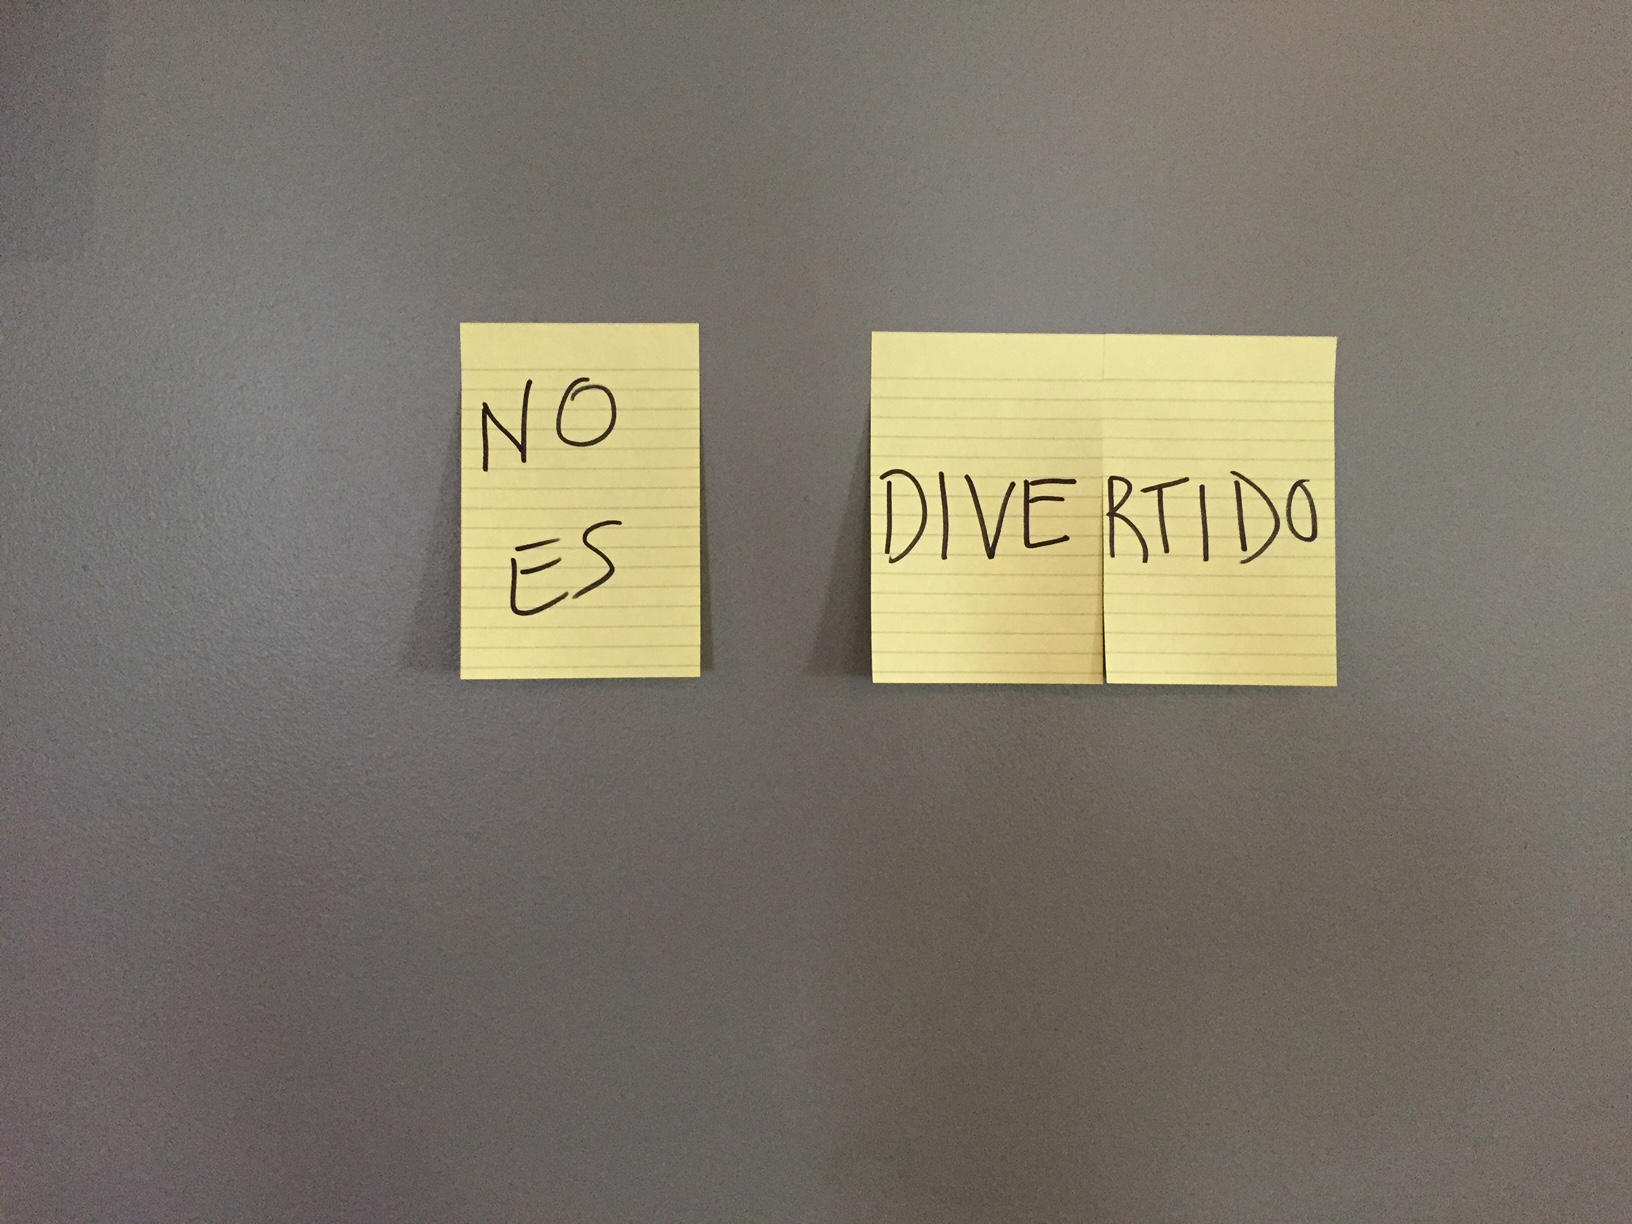 postit no divertido